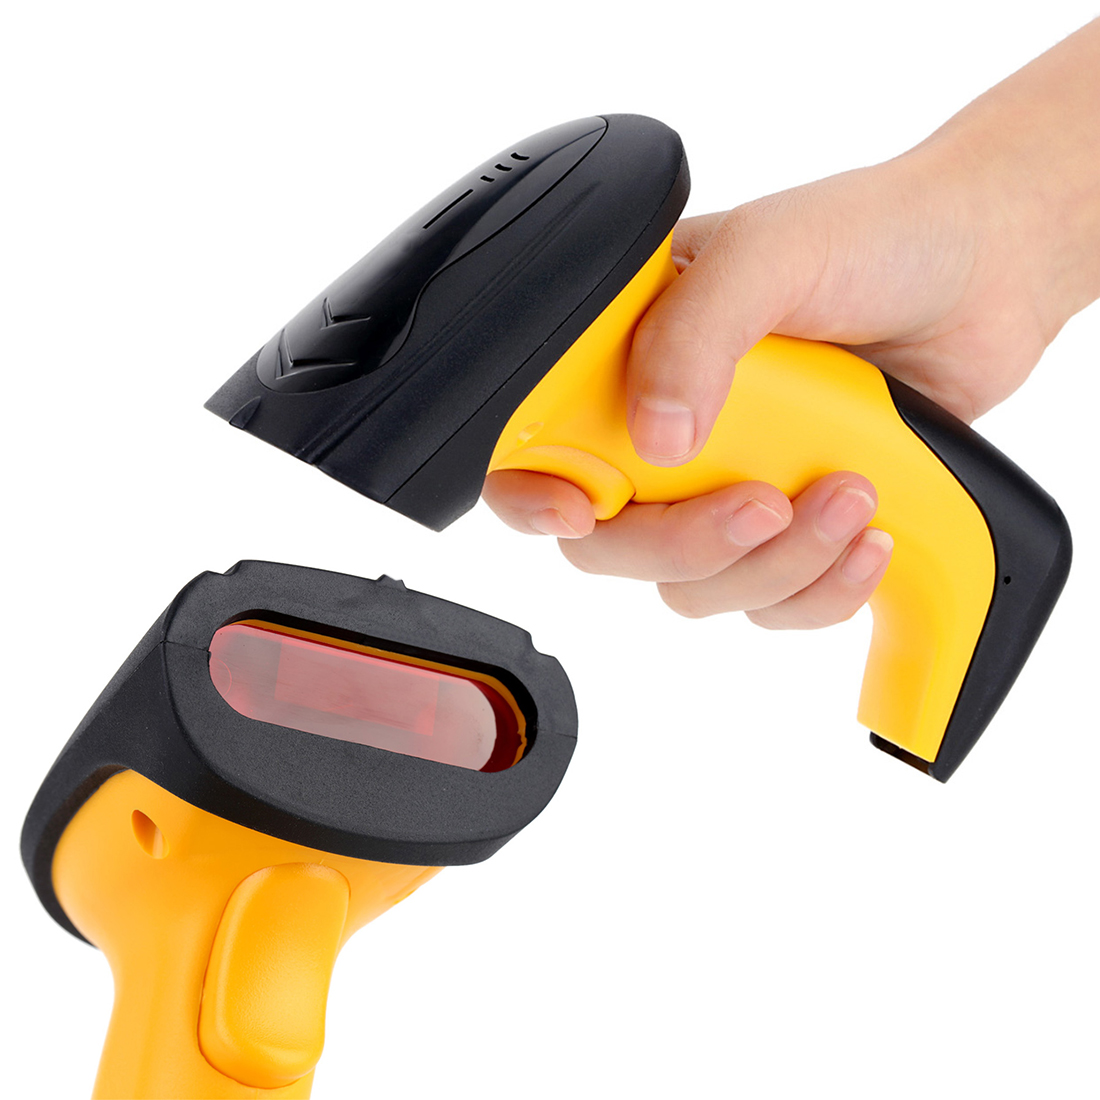 Wireless Laser Barcode Scanner Label Reader with Charger Base Handheld Barcode Scanning Gun With Storage for Supermarket Shop cheap 1d wireless laser scanner portable barcode reader with receiver no need drive handheld machine for warehouse supermarket